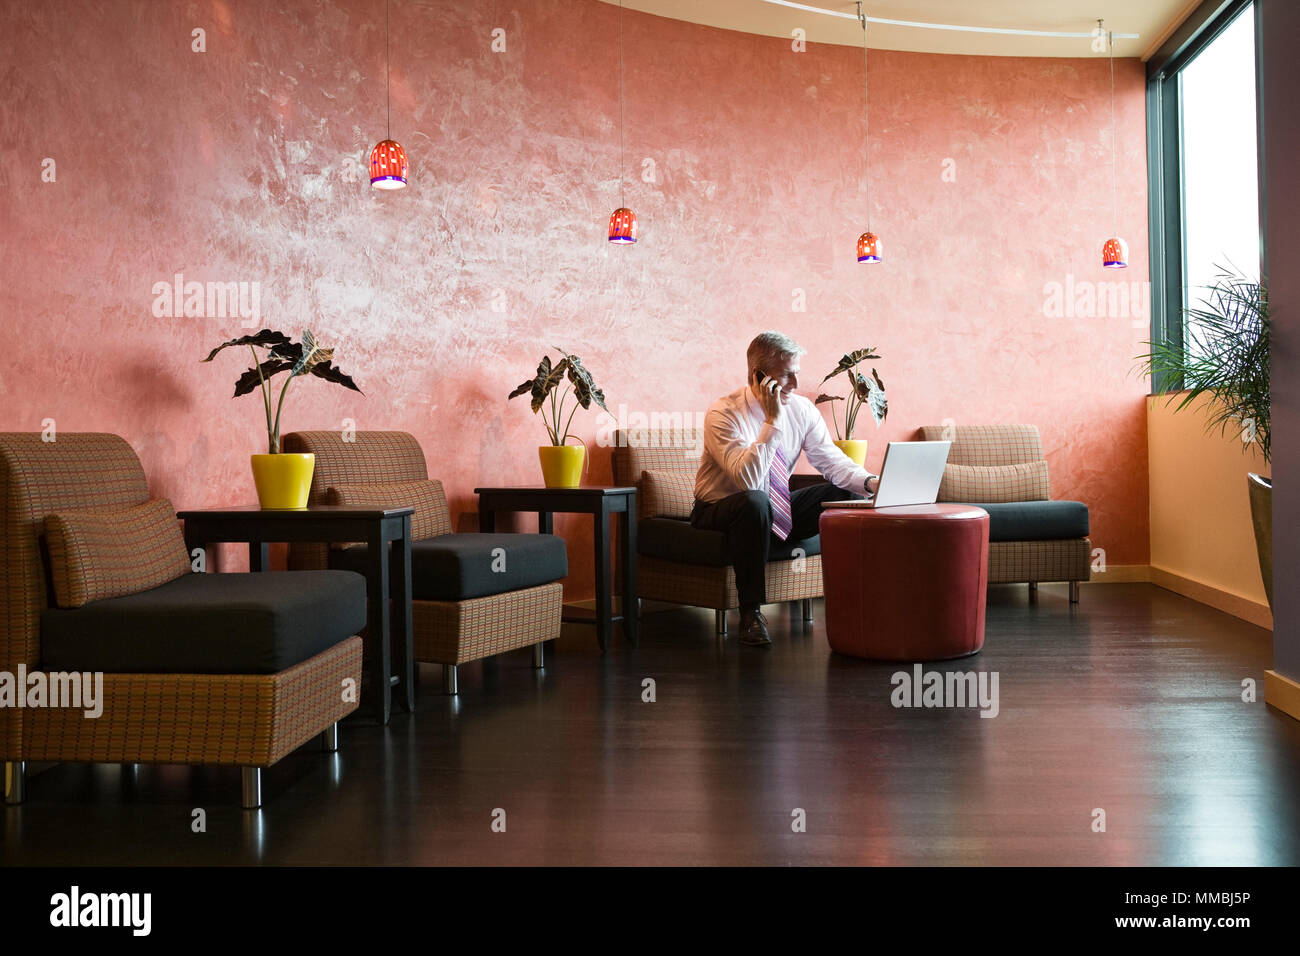 Caucasian man in an hip office lobby area - Stock Image